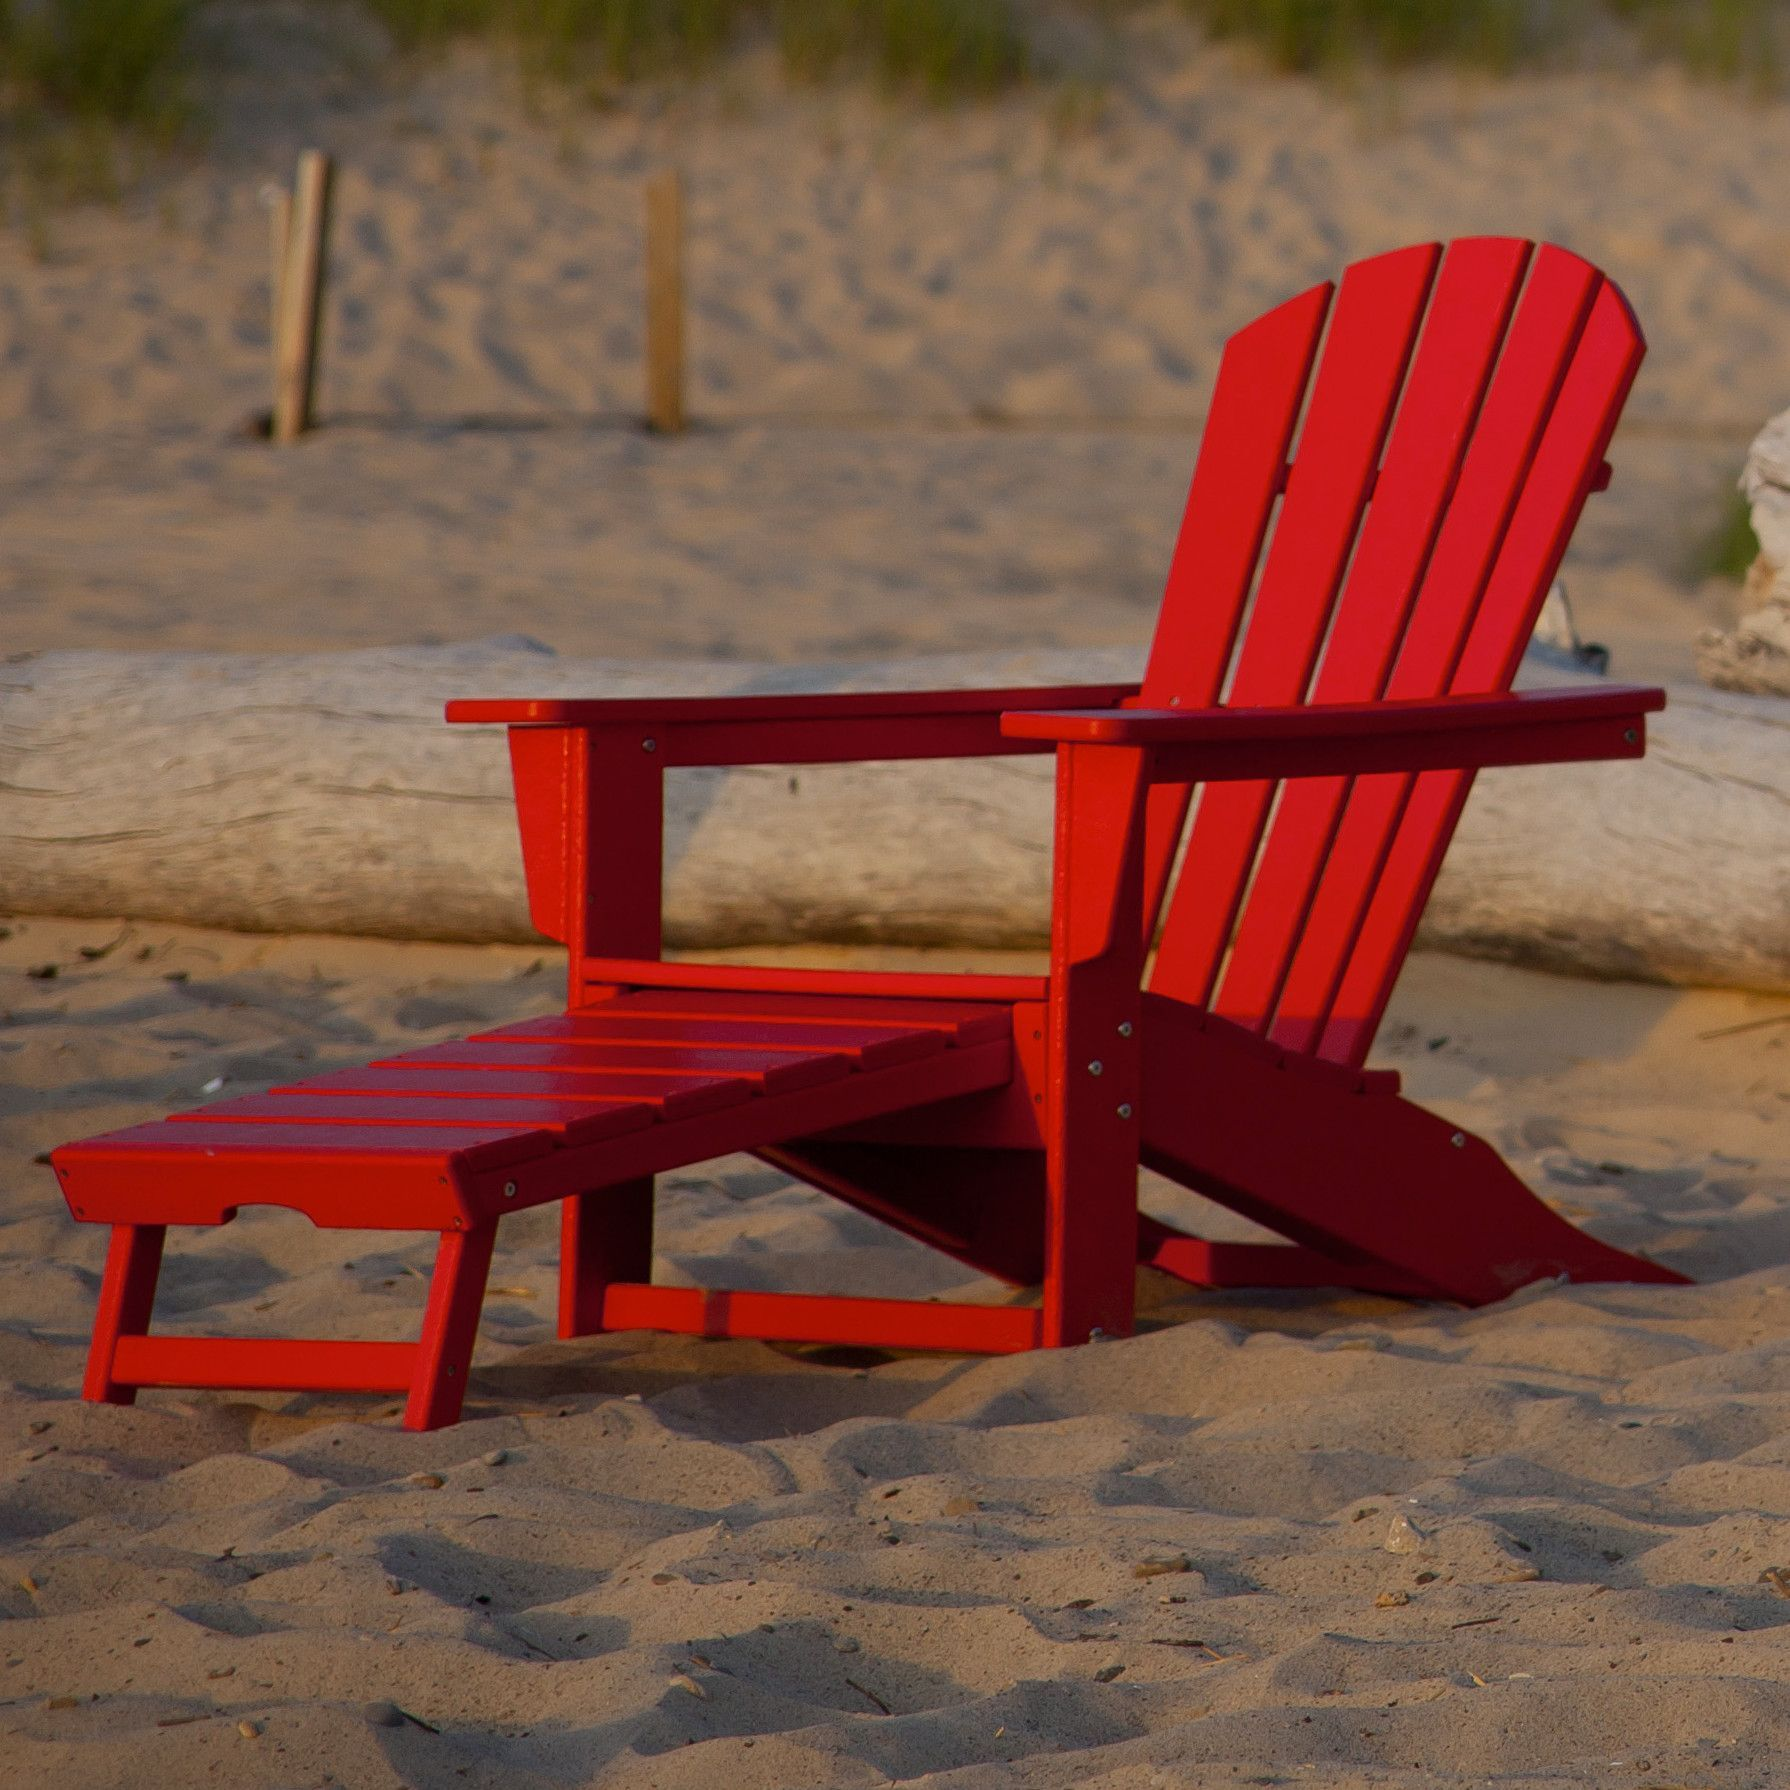 Palm Coast Plastic Adirondack Chair With Ottoman Plastic Adirondack Chairs Polywood Outdoor Furniture Adirondack Chair Plastic adirondack chairs with ottoman